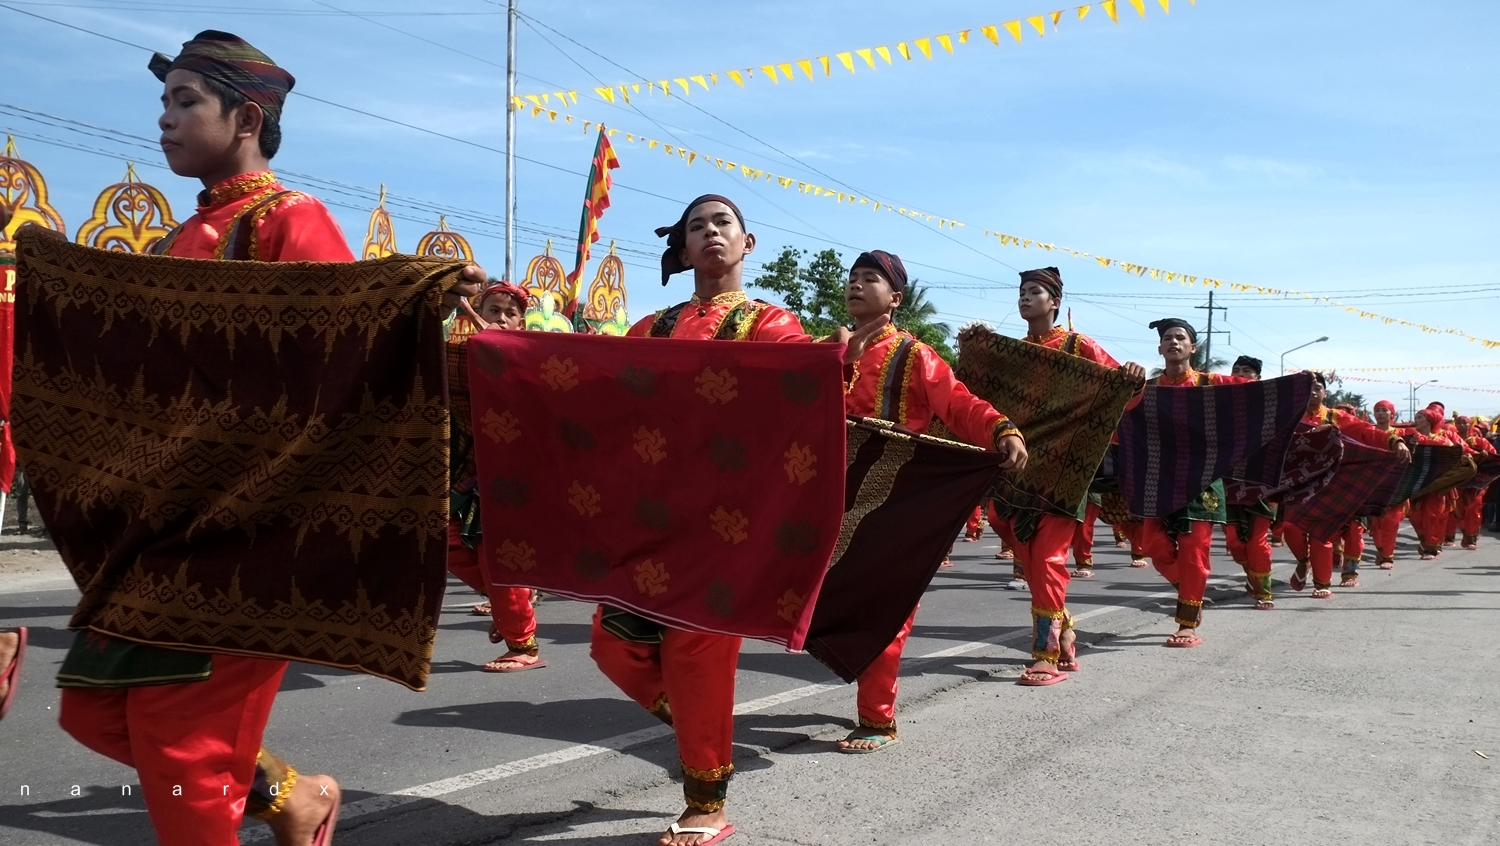 Inaul Festival celebrates the province's pride, rich culture and heritage.